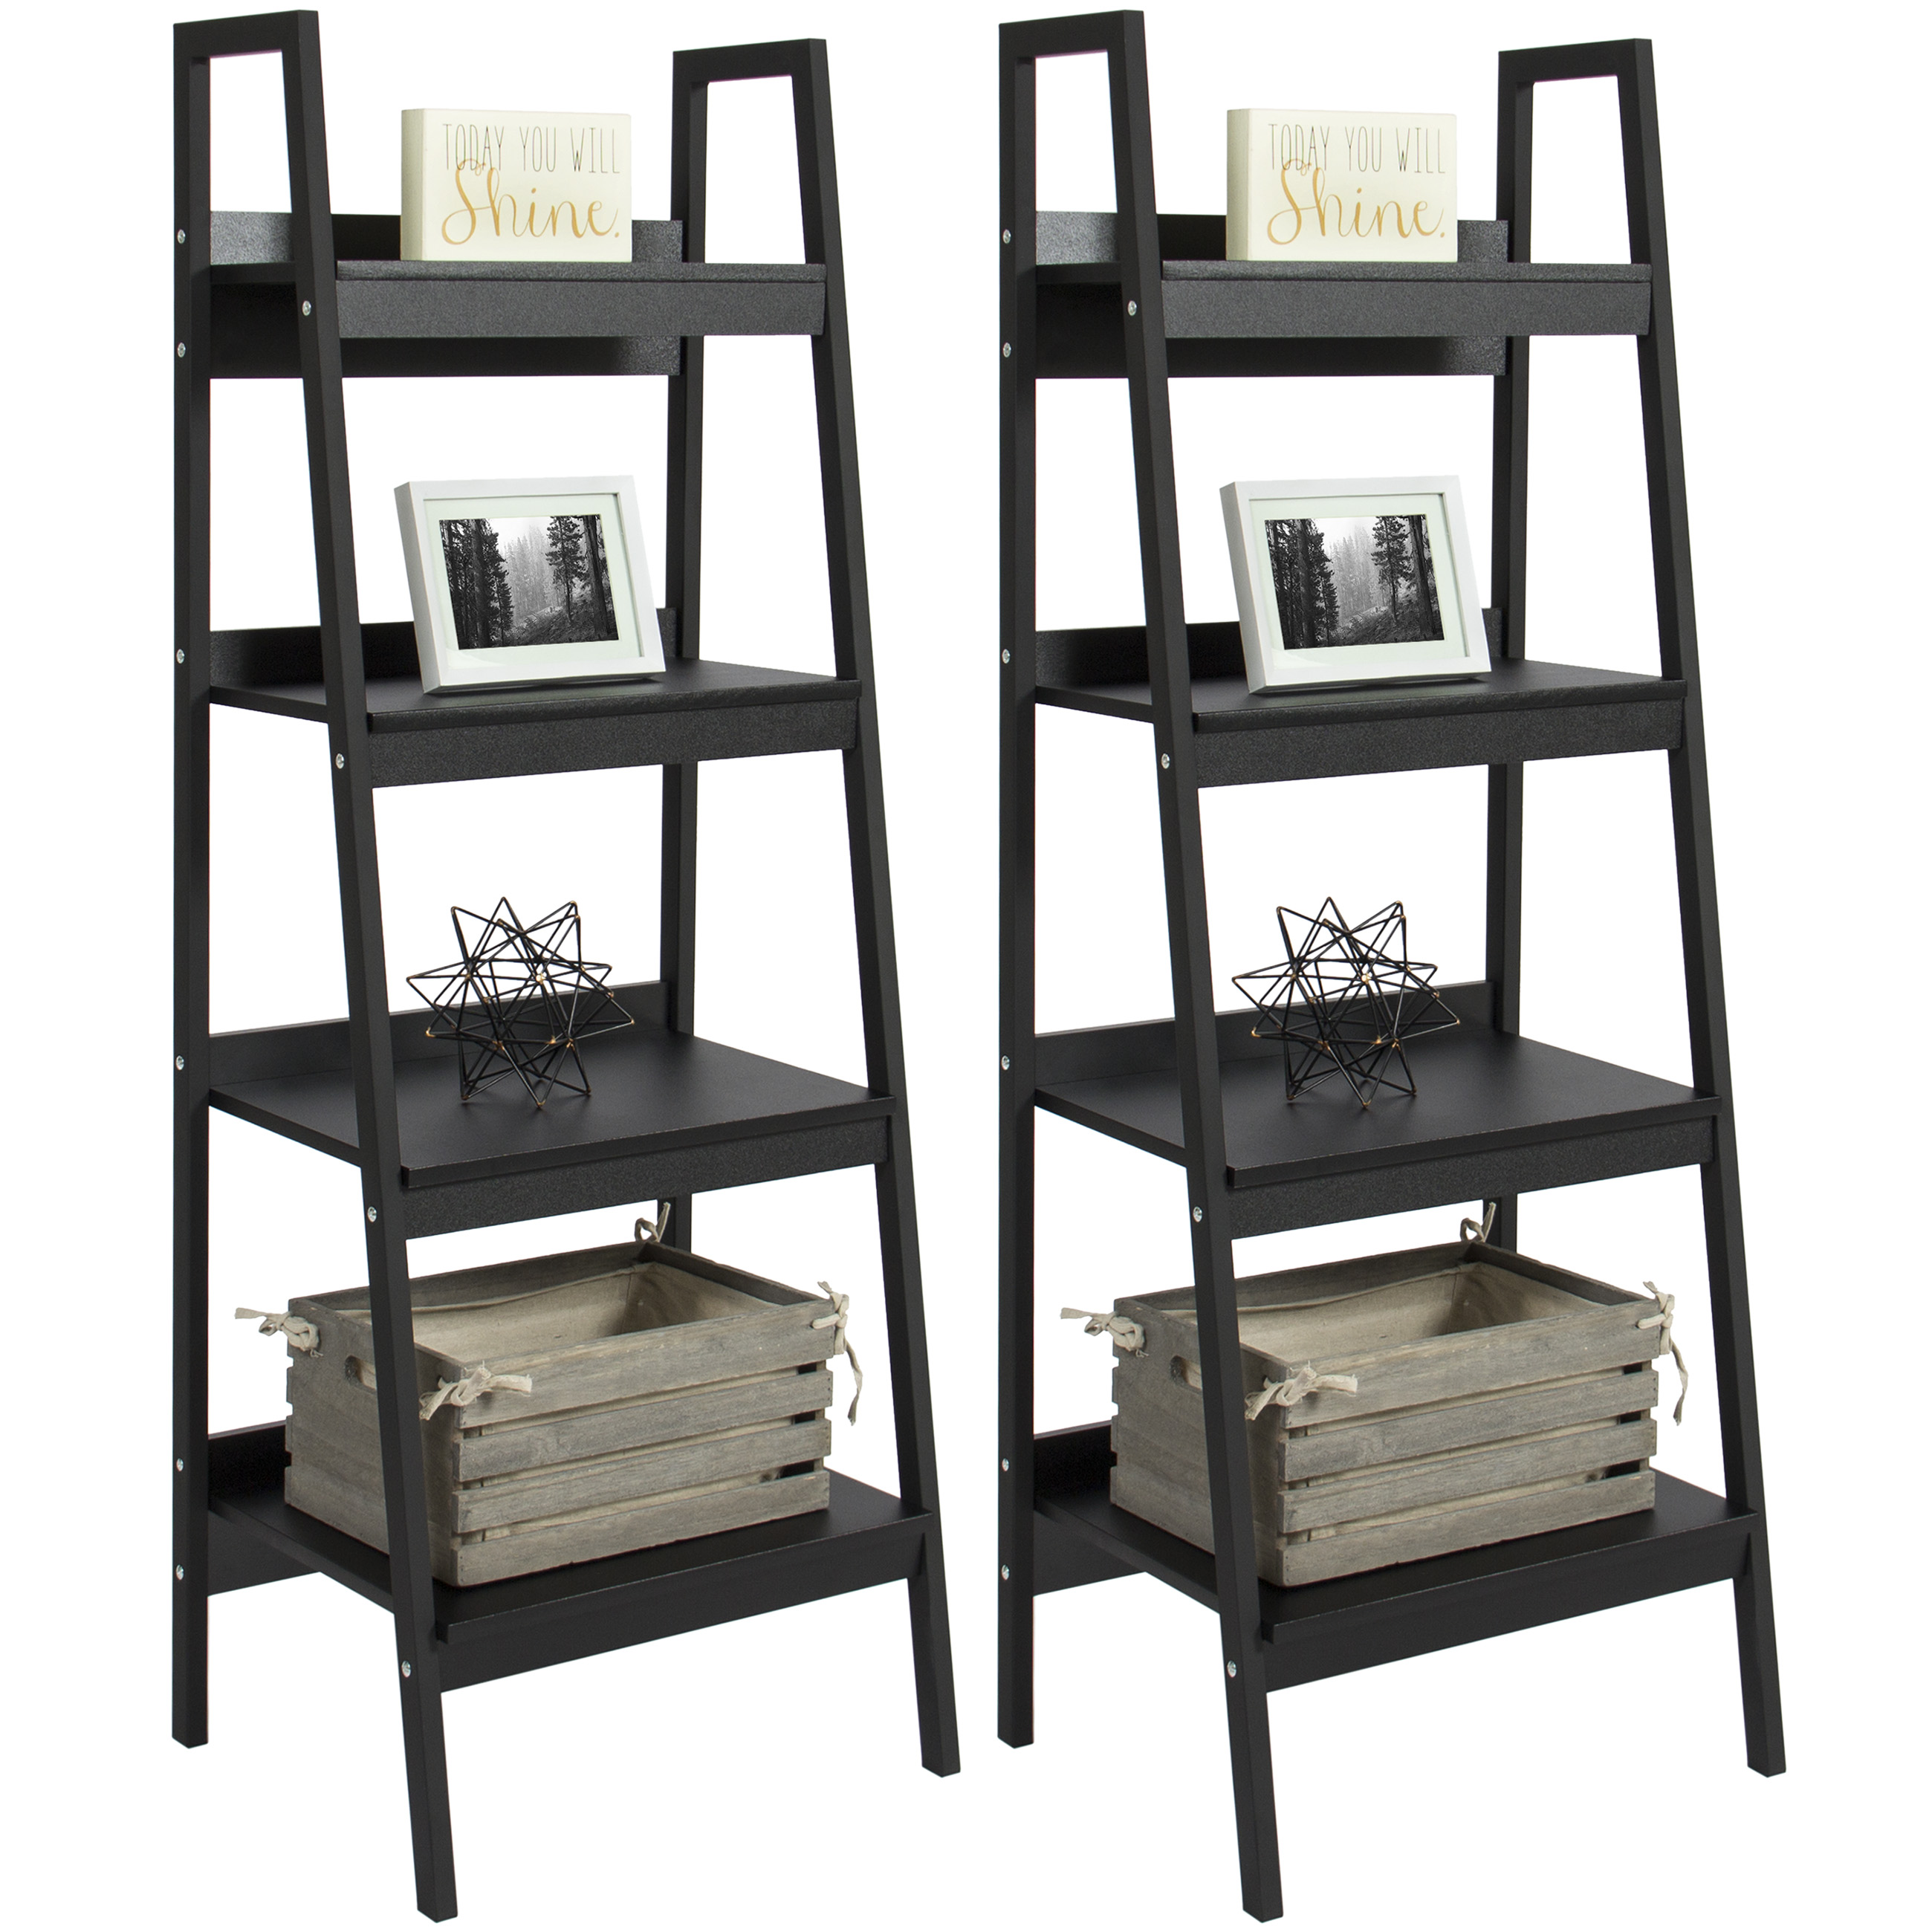 Best Choice Products Furniture Set Pair of 4-Shelf Ladder Bookcases- Black by